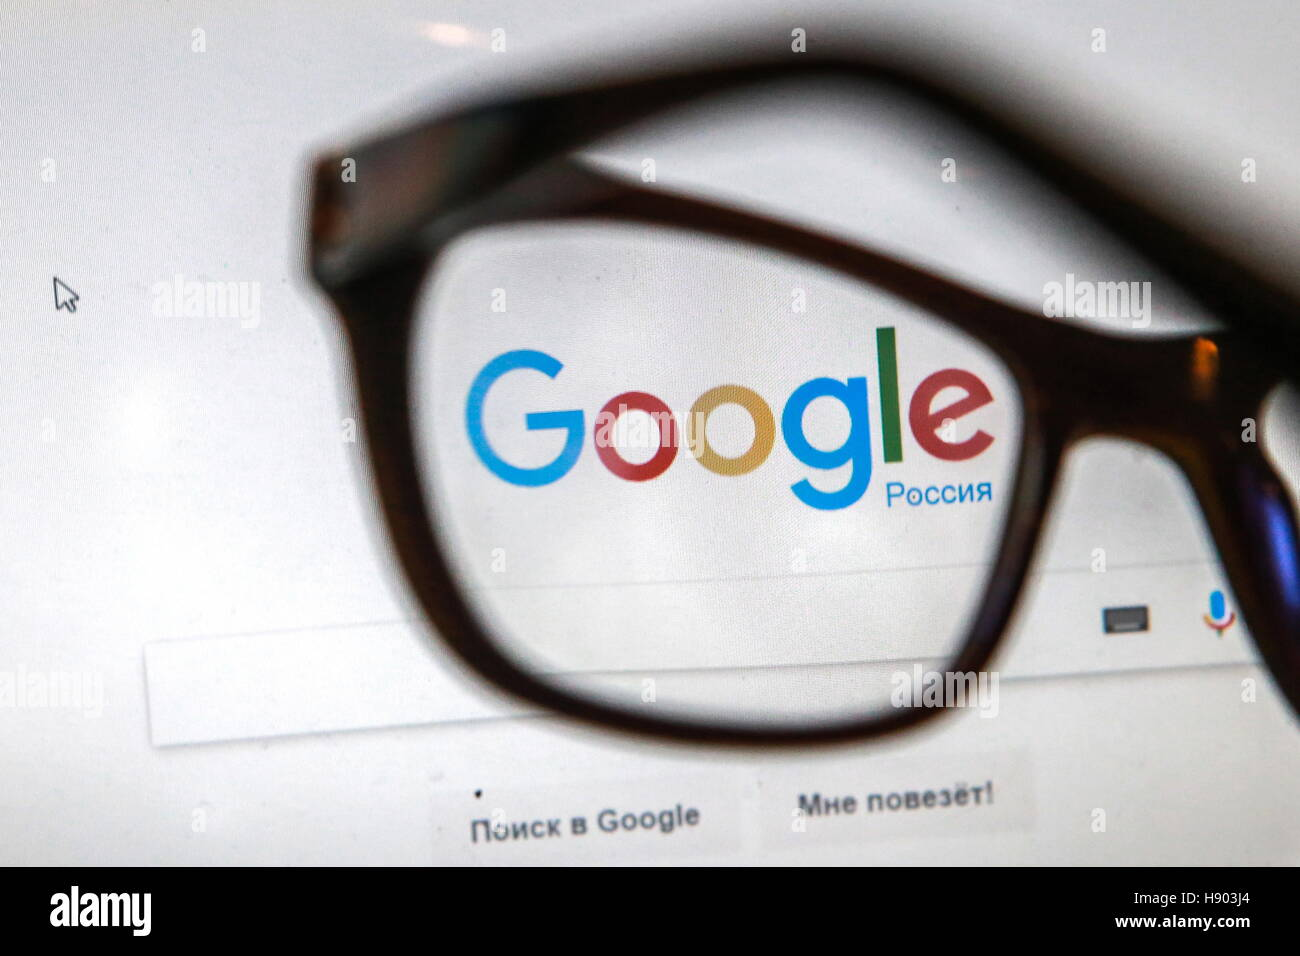 St Petersburg, Russia. 16th Nov, 2016. Glasses on a computer screen showing the logo and search box of the Google - Stock Image